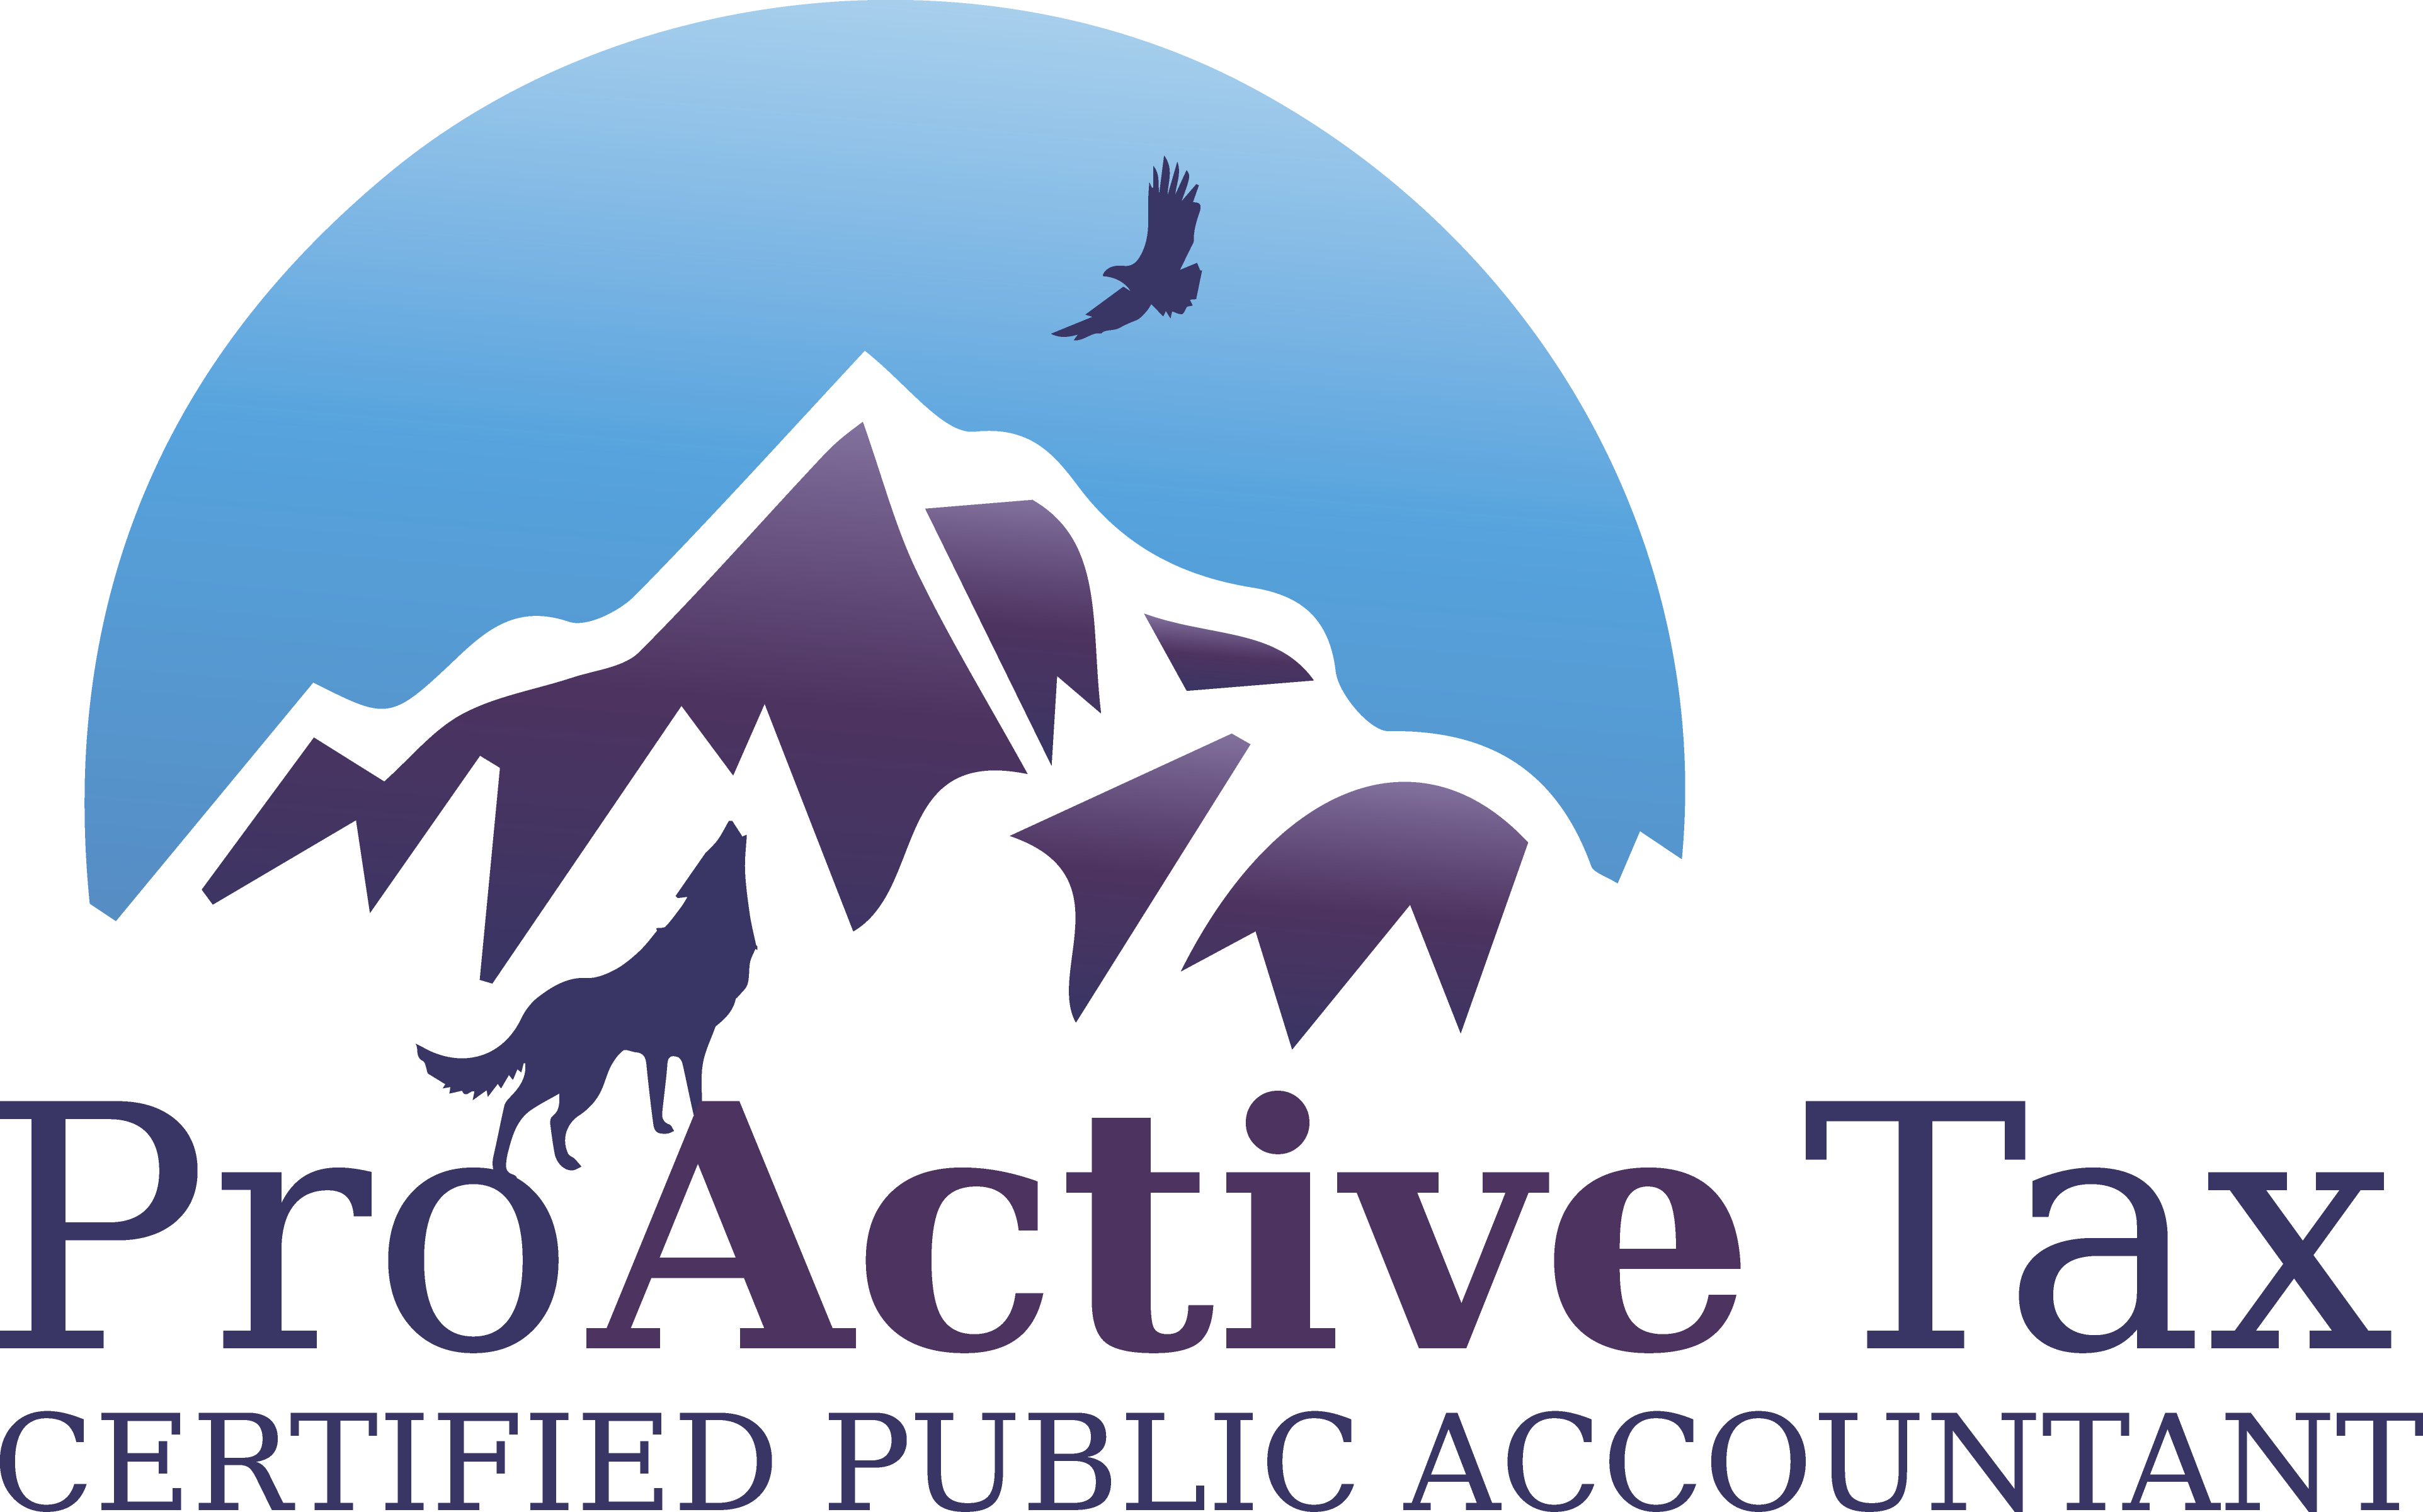 'ProActive Tax CPA' needs a logo that will make an otherwise boring CPA firm look enticing!